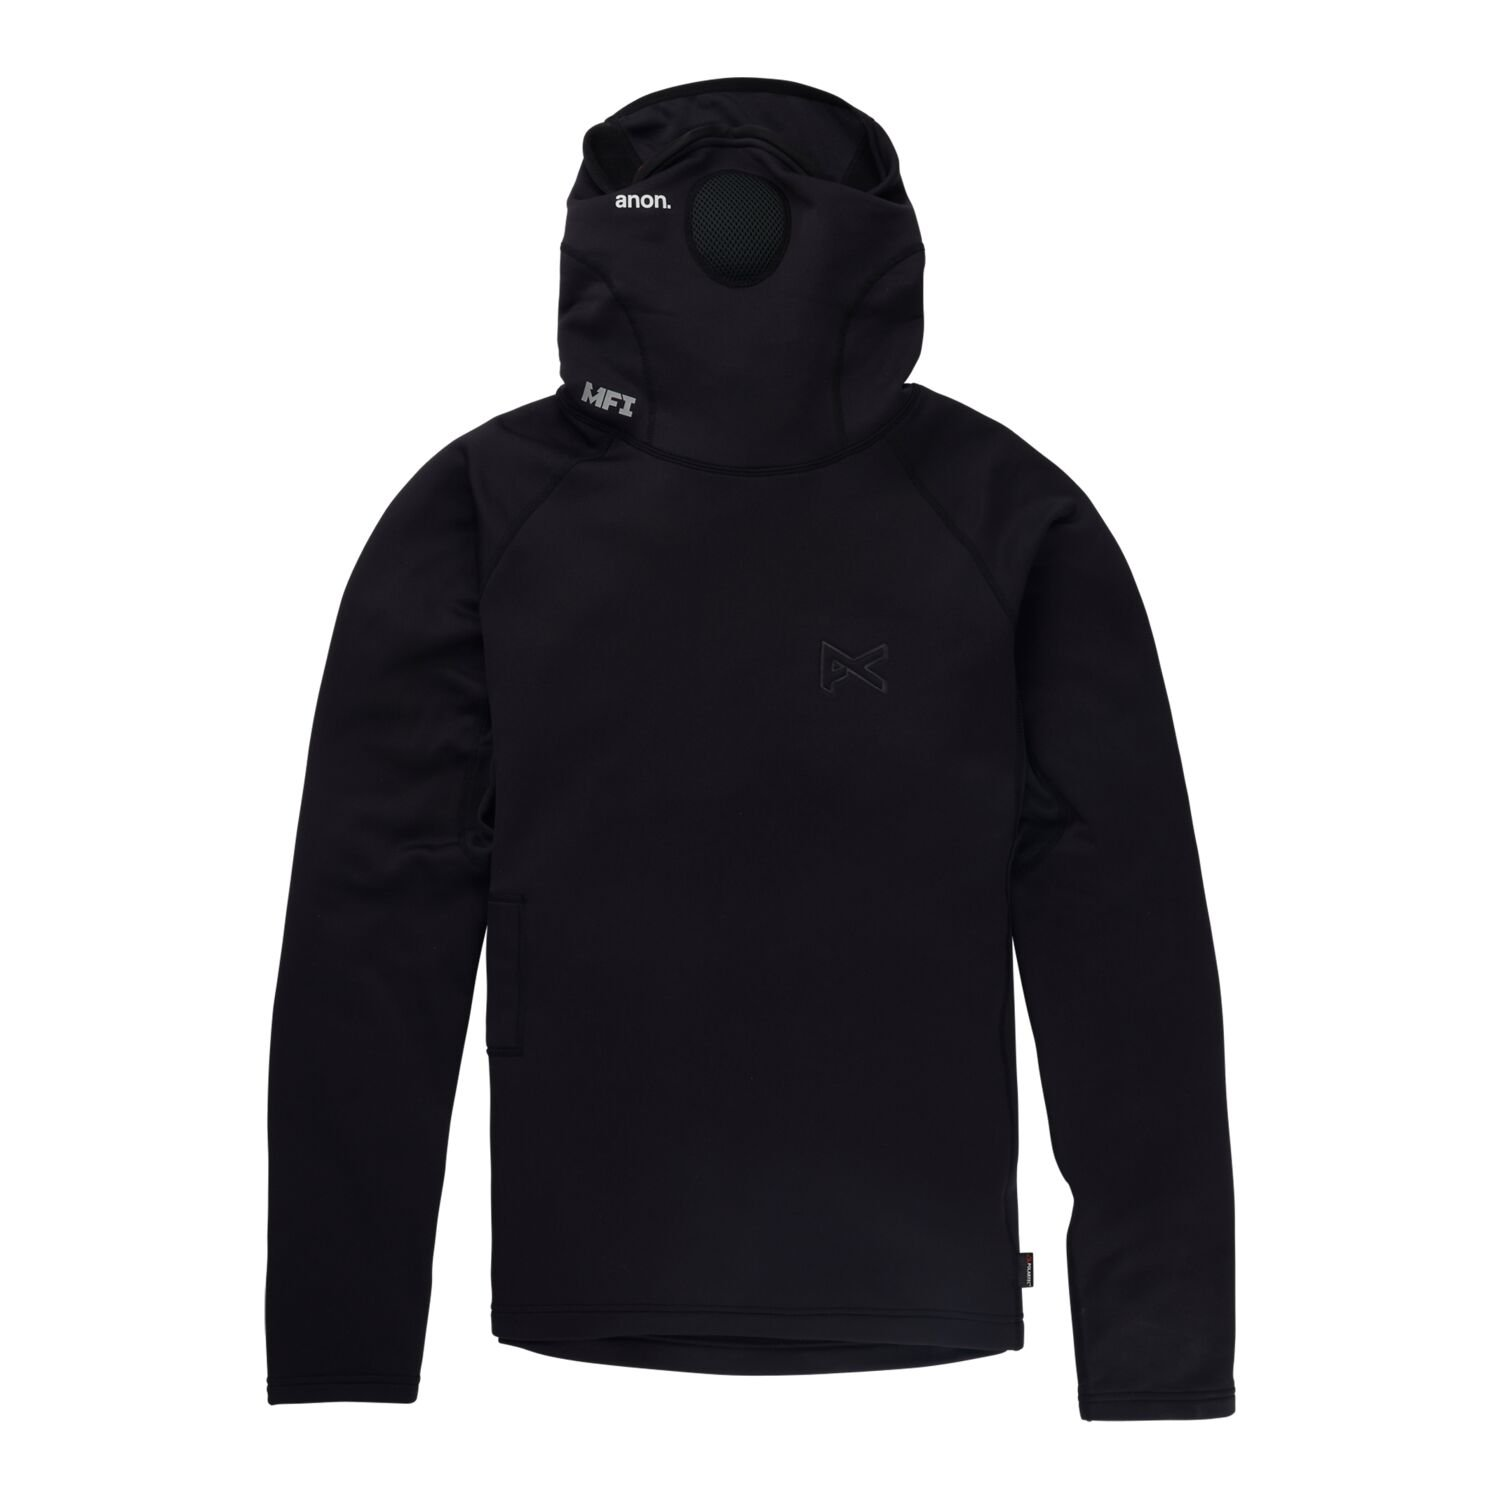 Anon MFI Power Dry Long Sleeve Base Layer